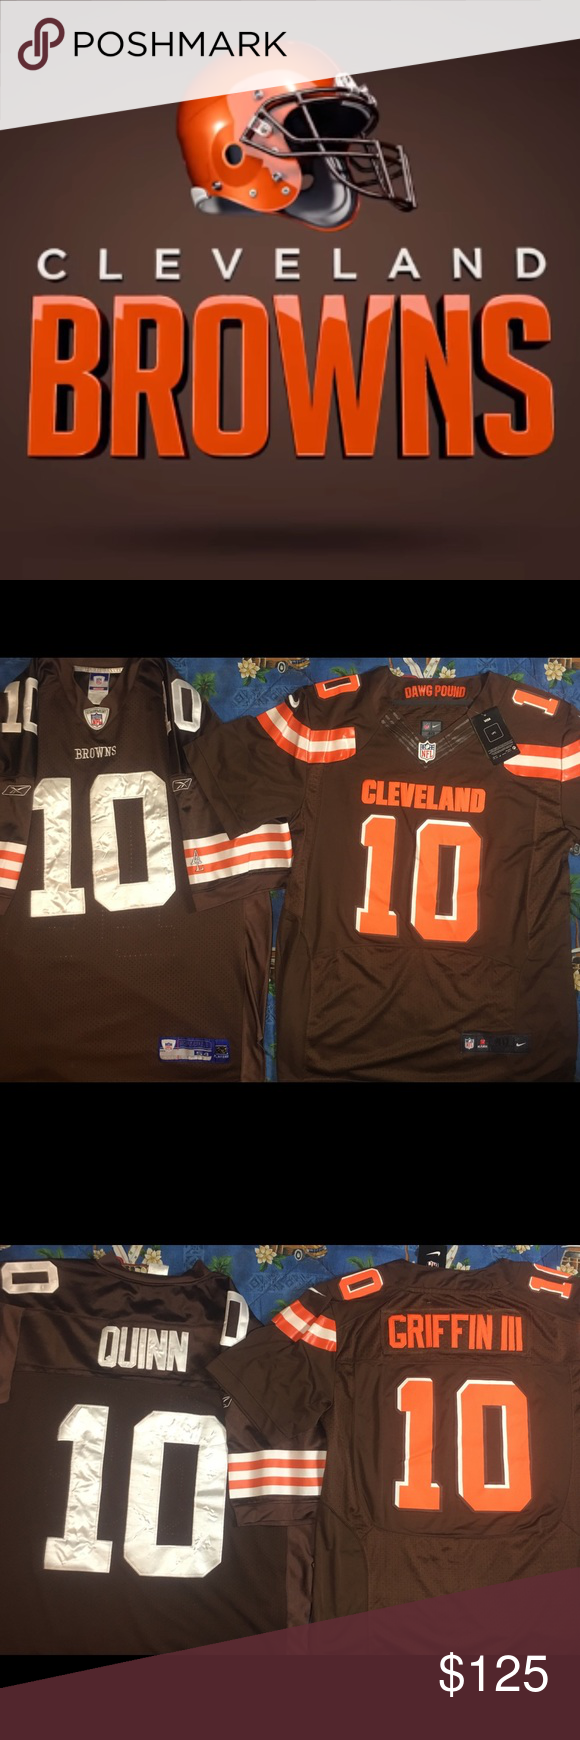 new concept e24be 648f2 Cleveland Browns Jersey Bundle Prove you are the #1 ...